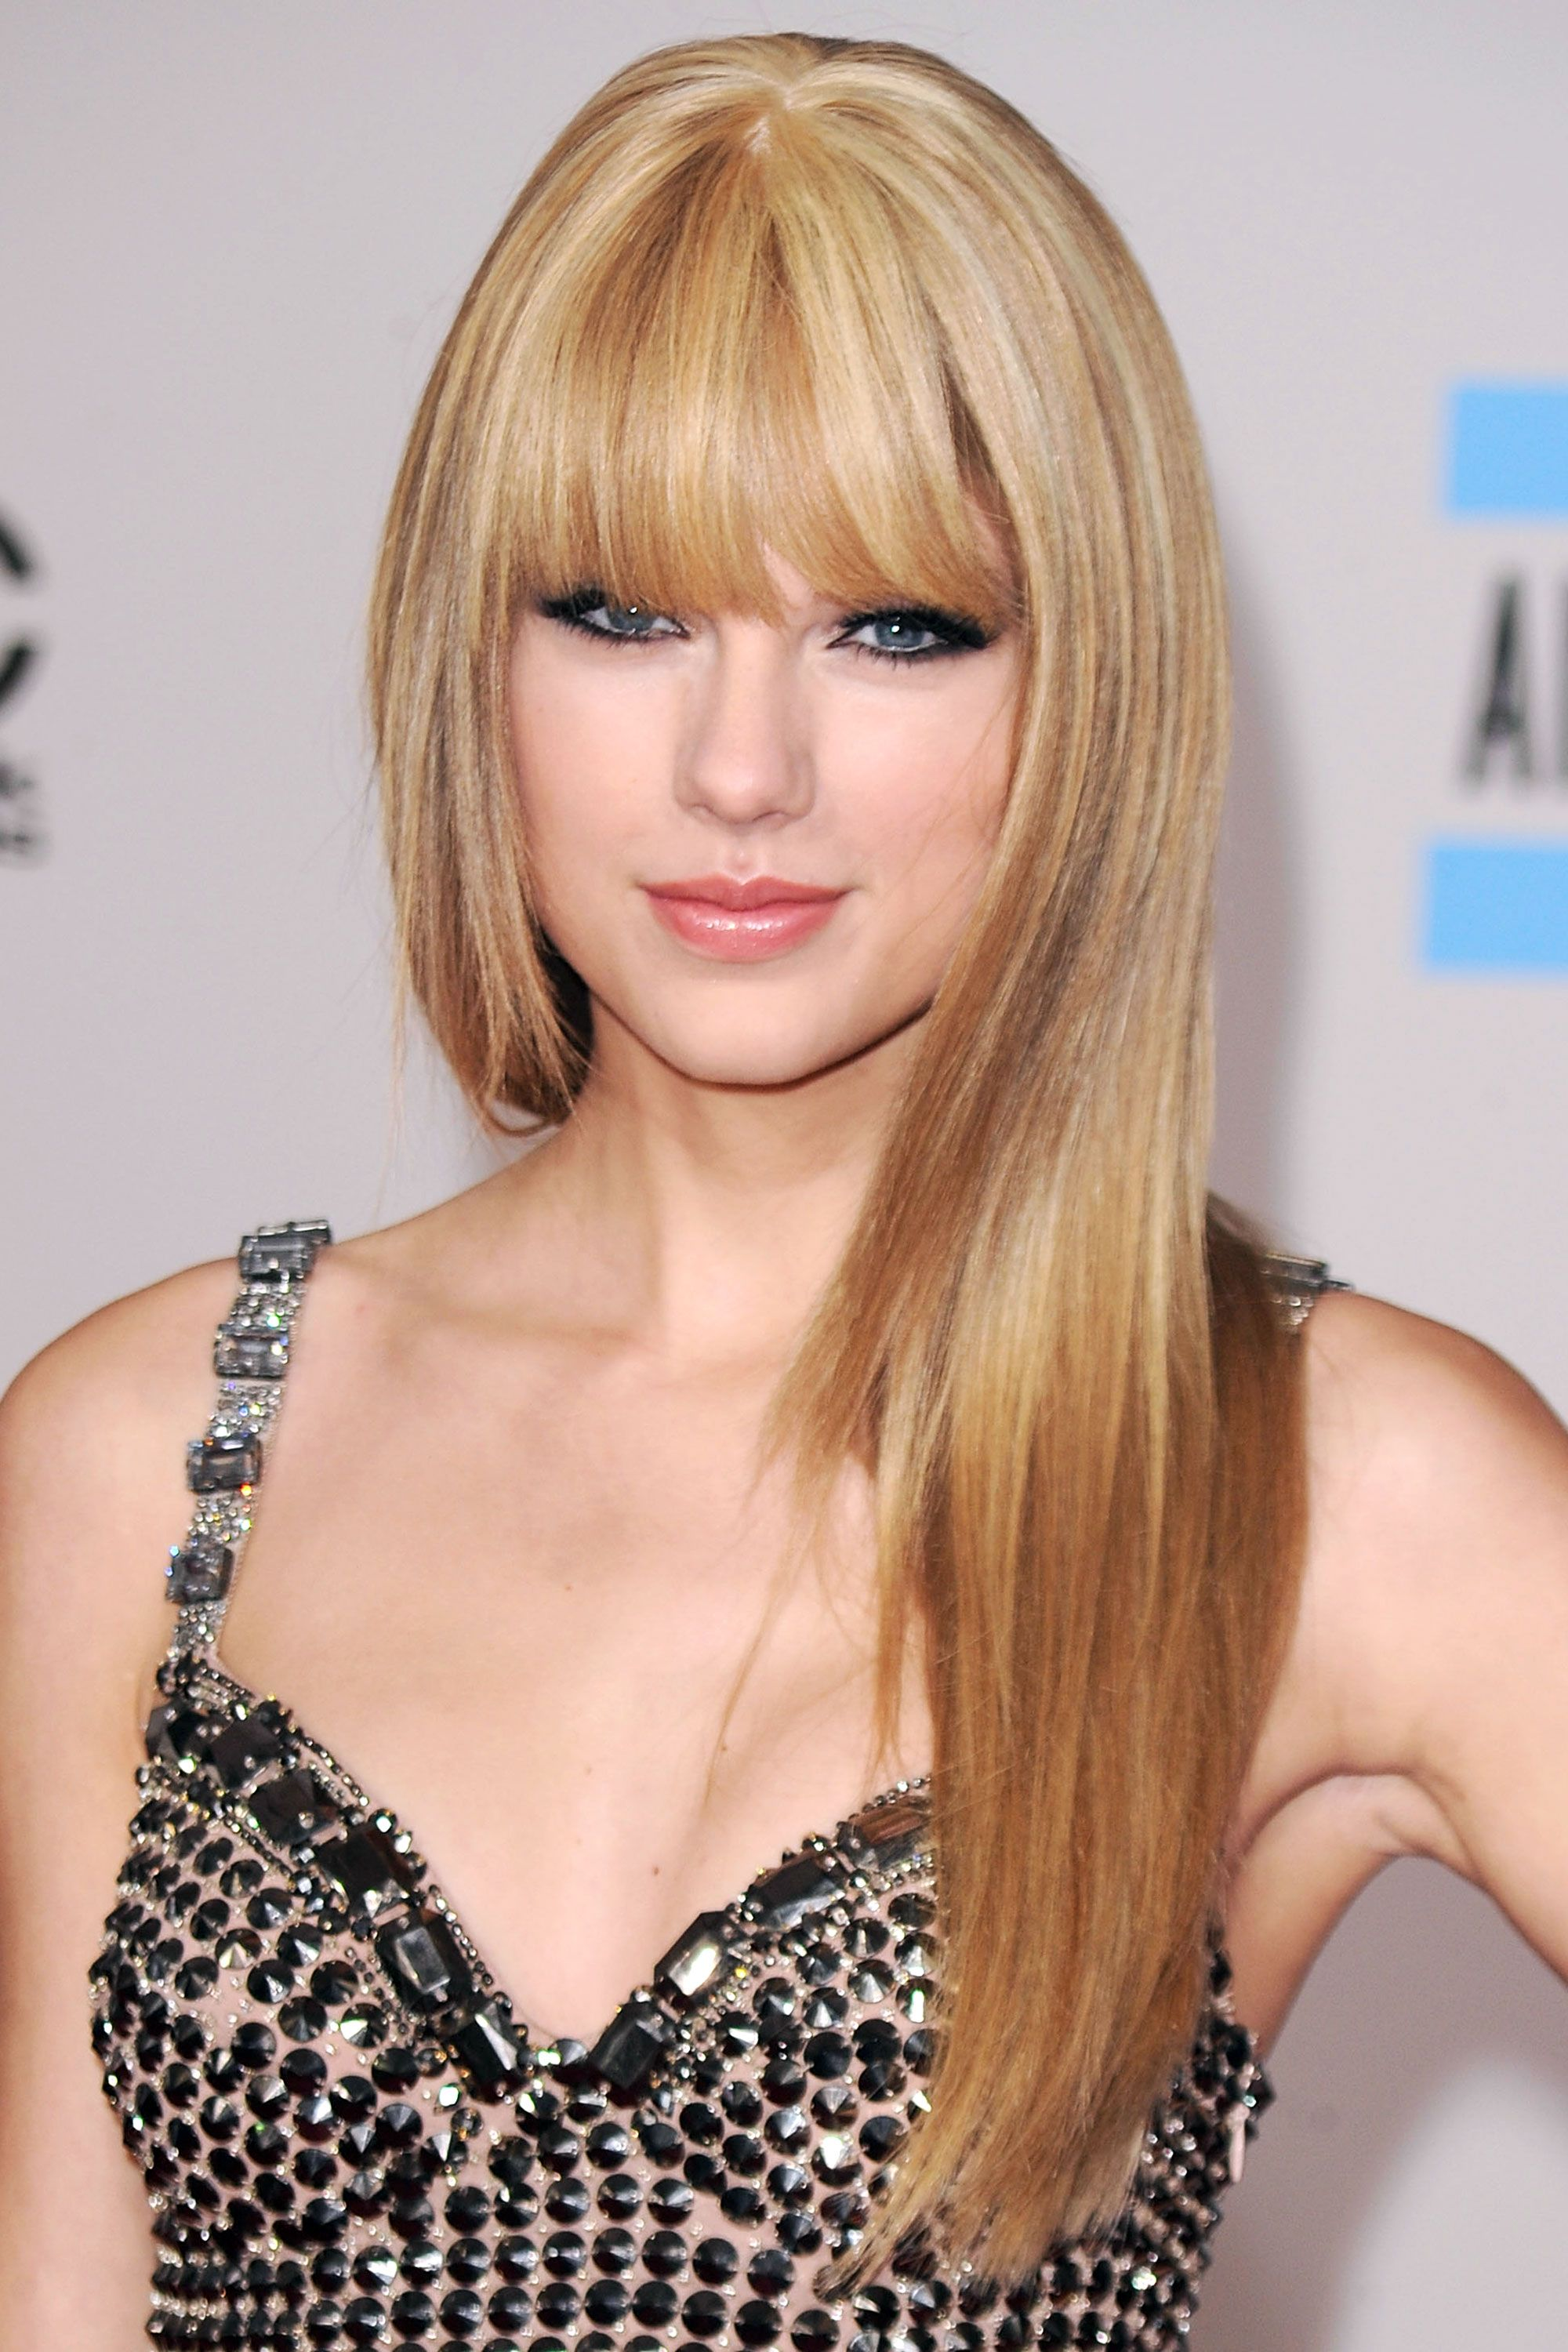 Taylor Swift S Amazing Beauty Transformation Through The Years Taylor Swift Hair Long Hair Styles Hair Styles